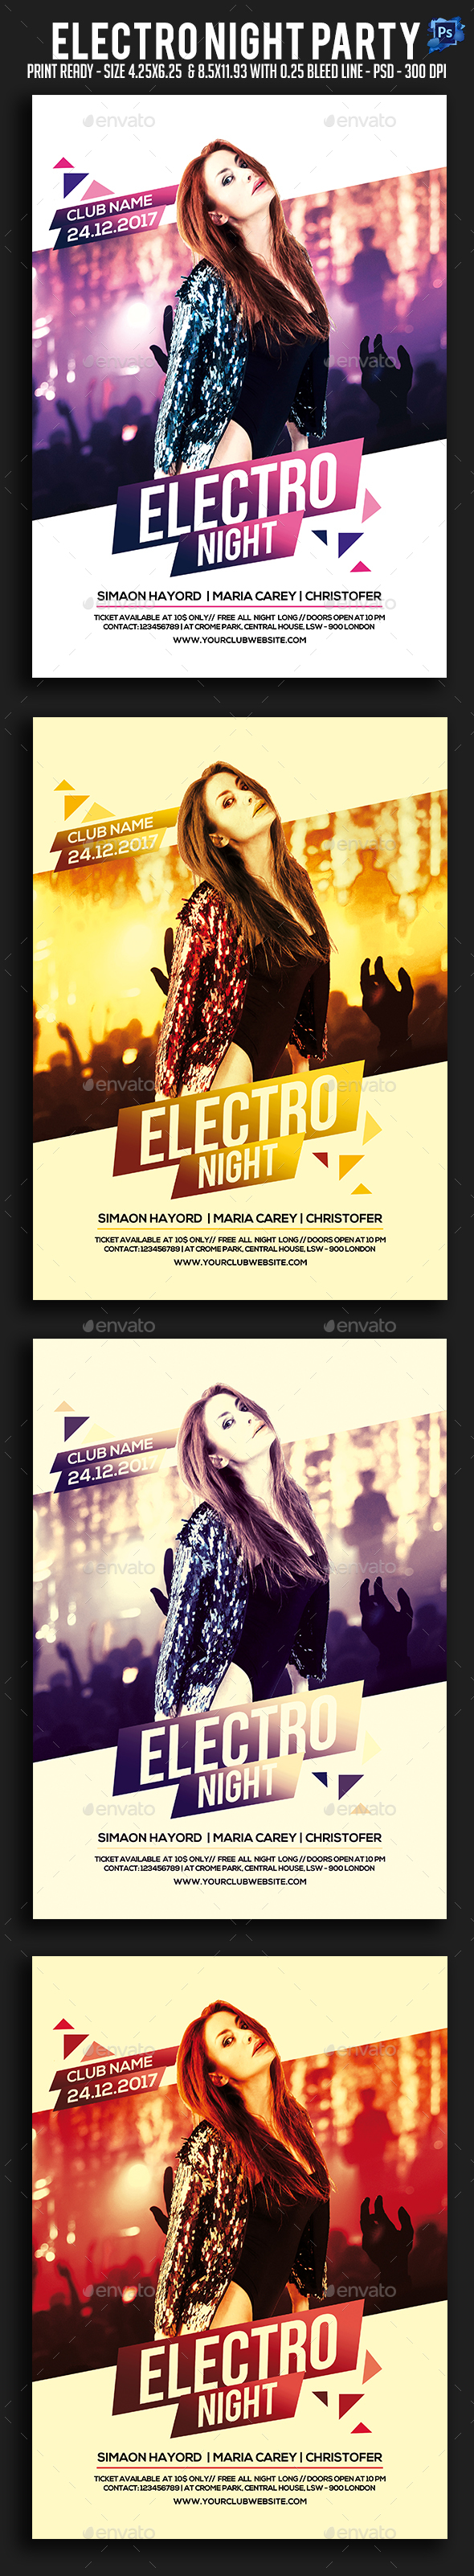 GraphicRiver Electro Night Party Flyer 21002241